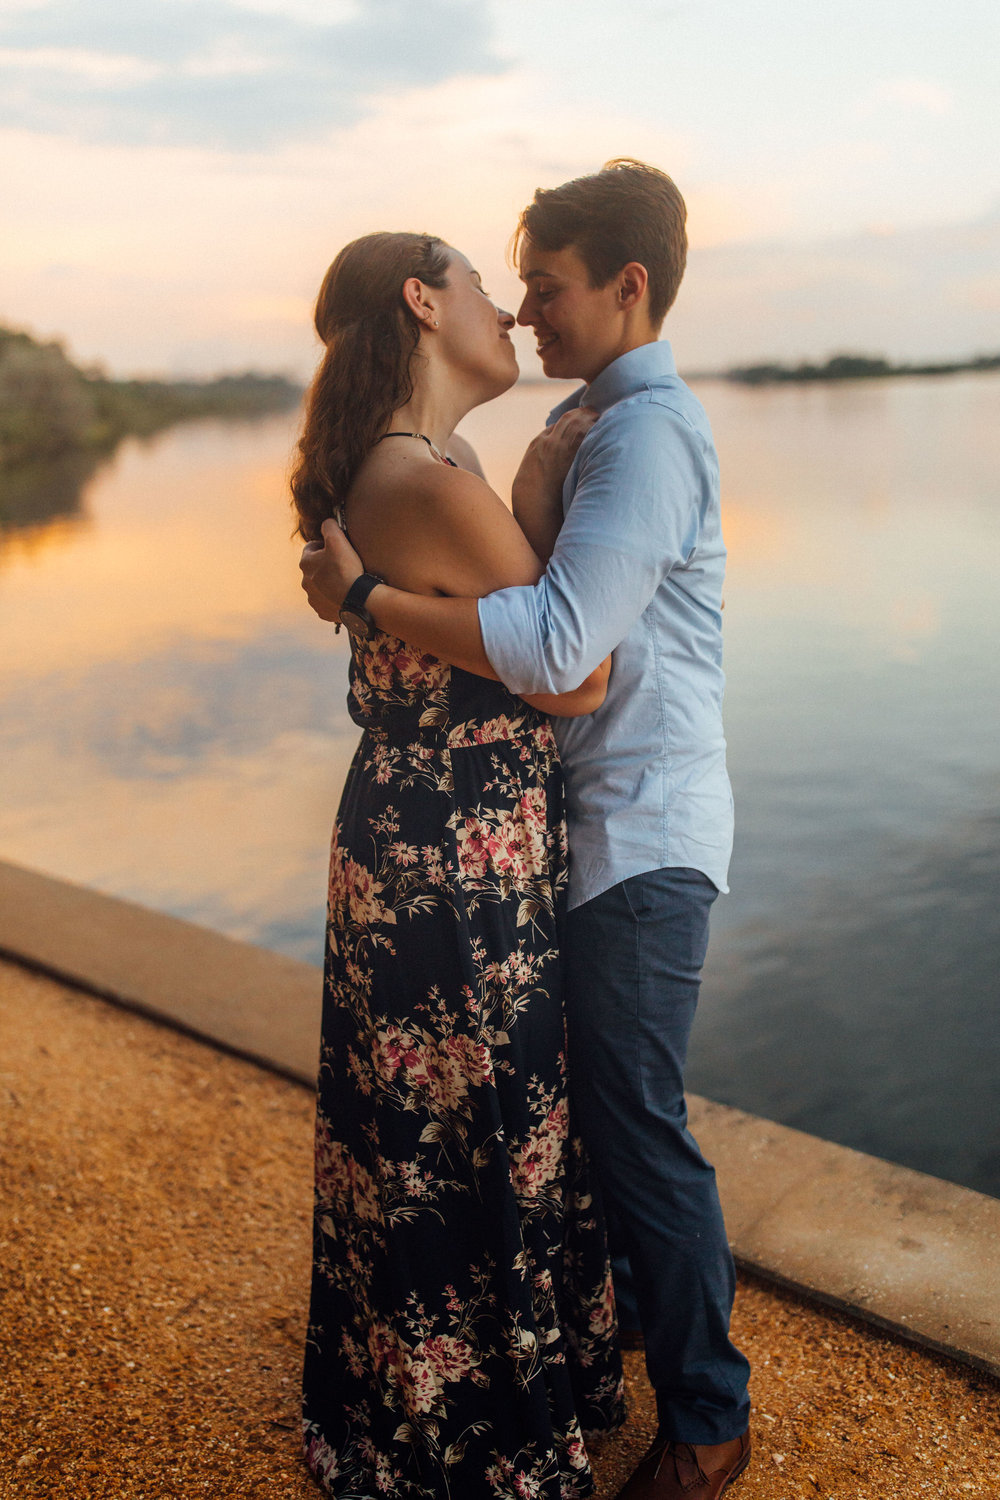 Orlando Natural Forest State Park Engagement Photos- Romantic LGBT Engaged Couples photos139.jpg